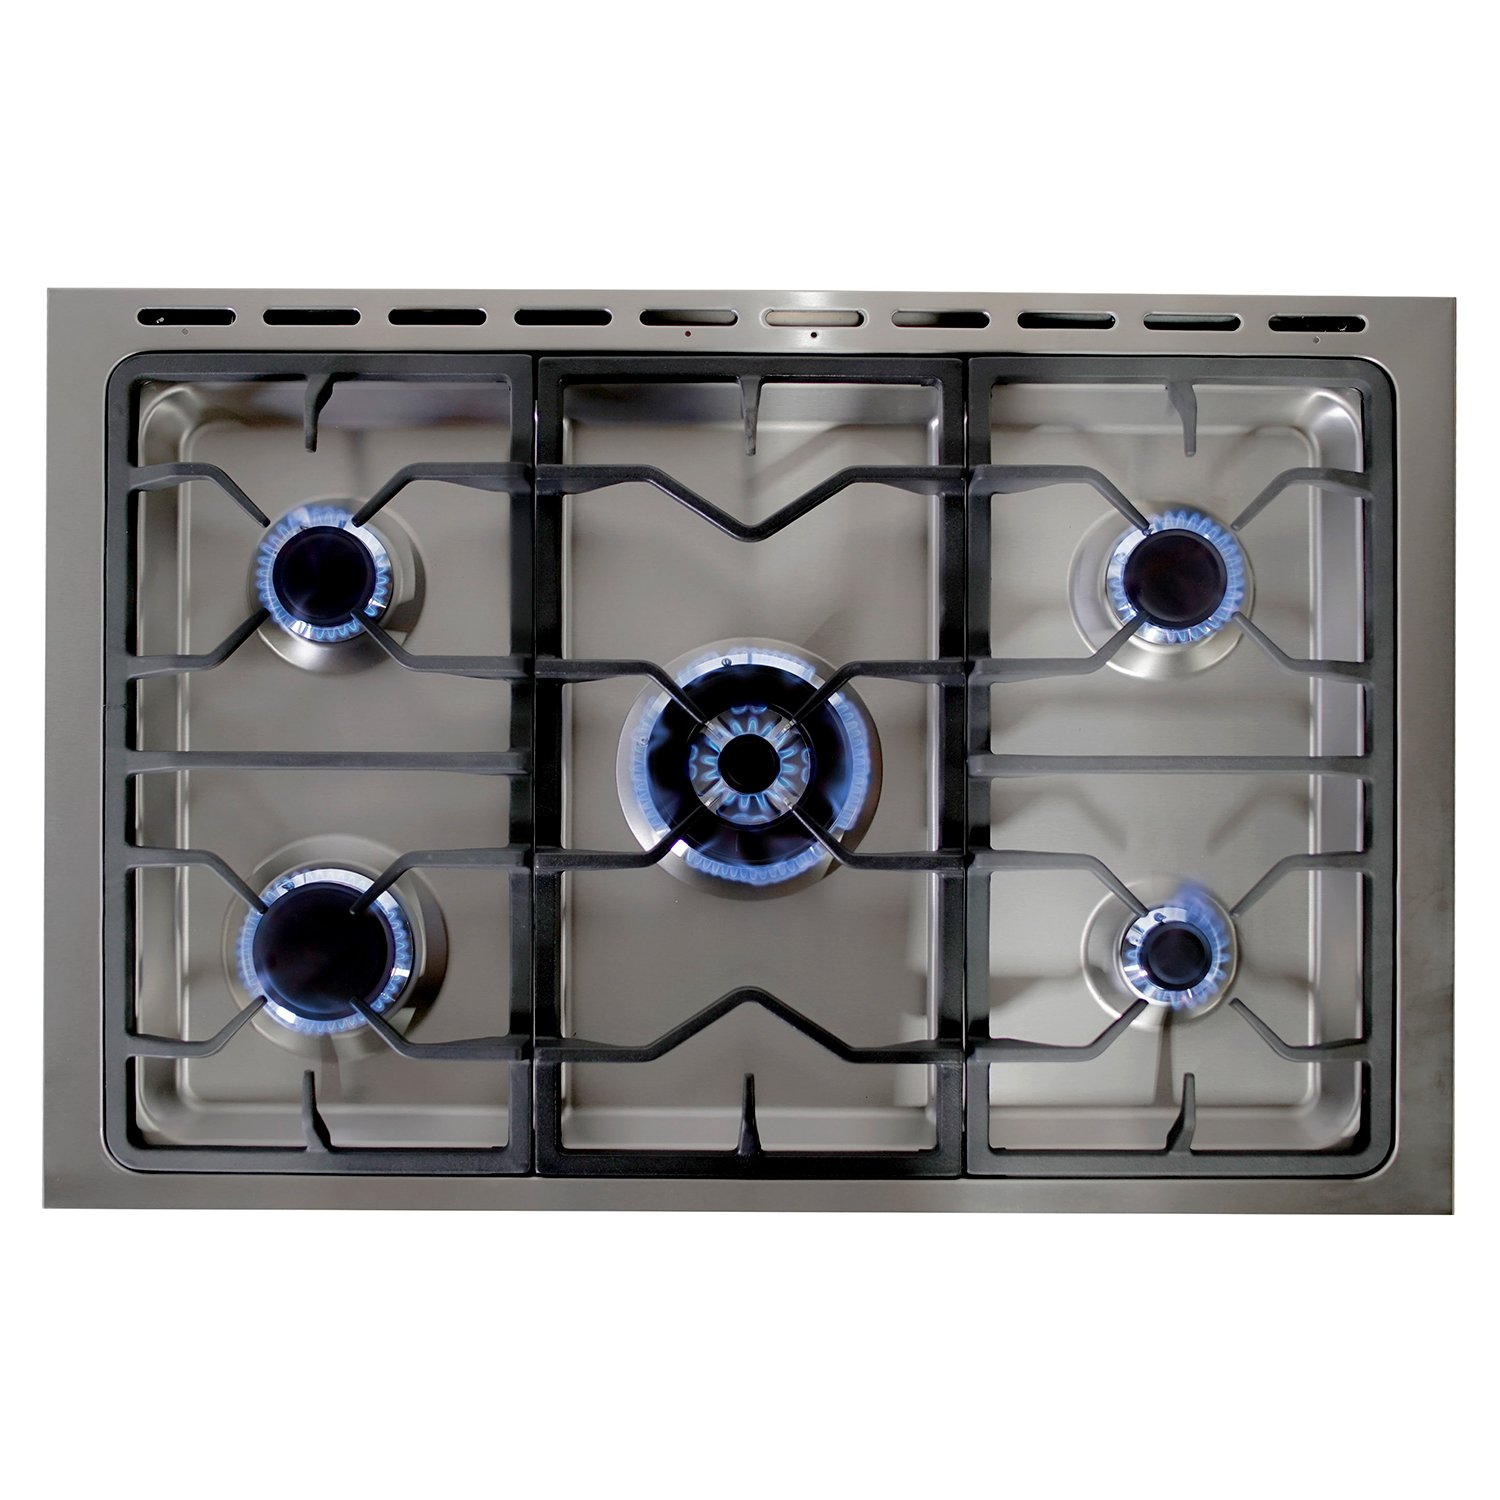 Amazon.com: Cosmo F965 36-Inches Dual Fuel Gas Range with 3.8 cu. ft ...